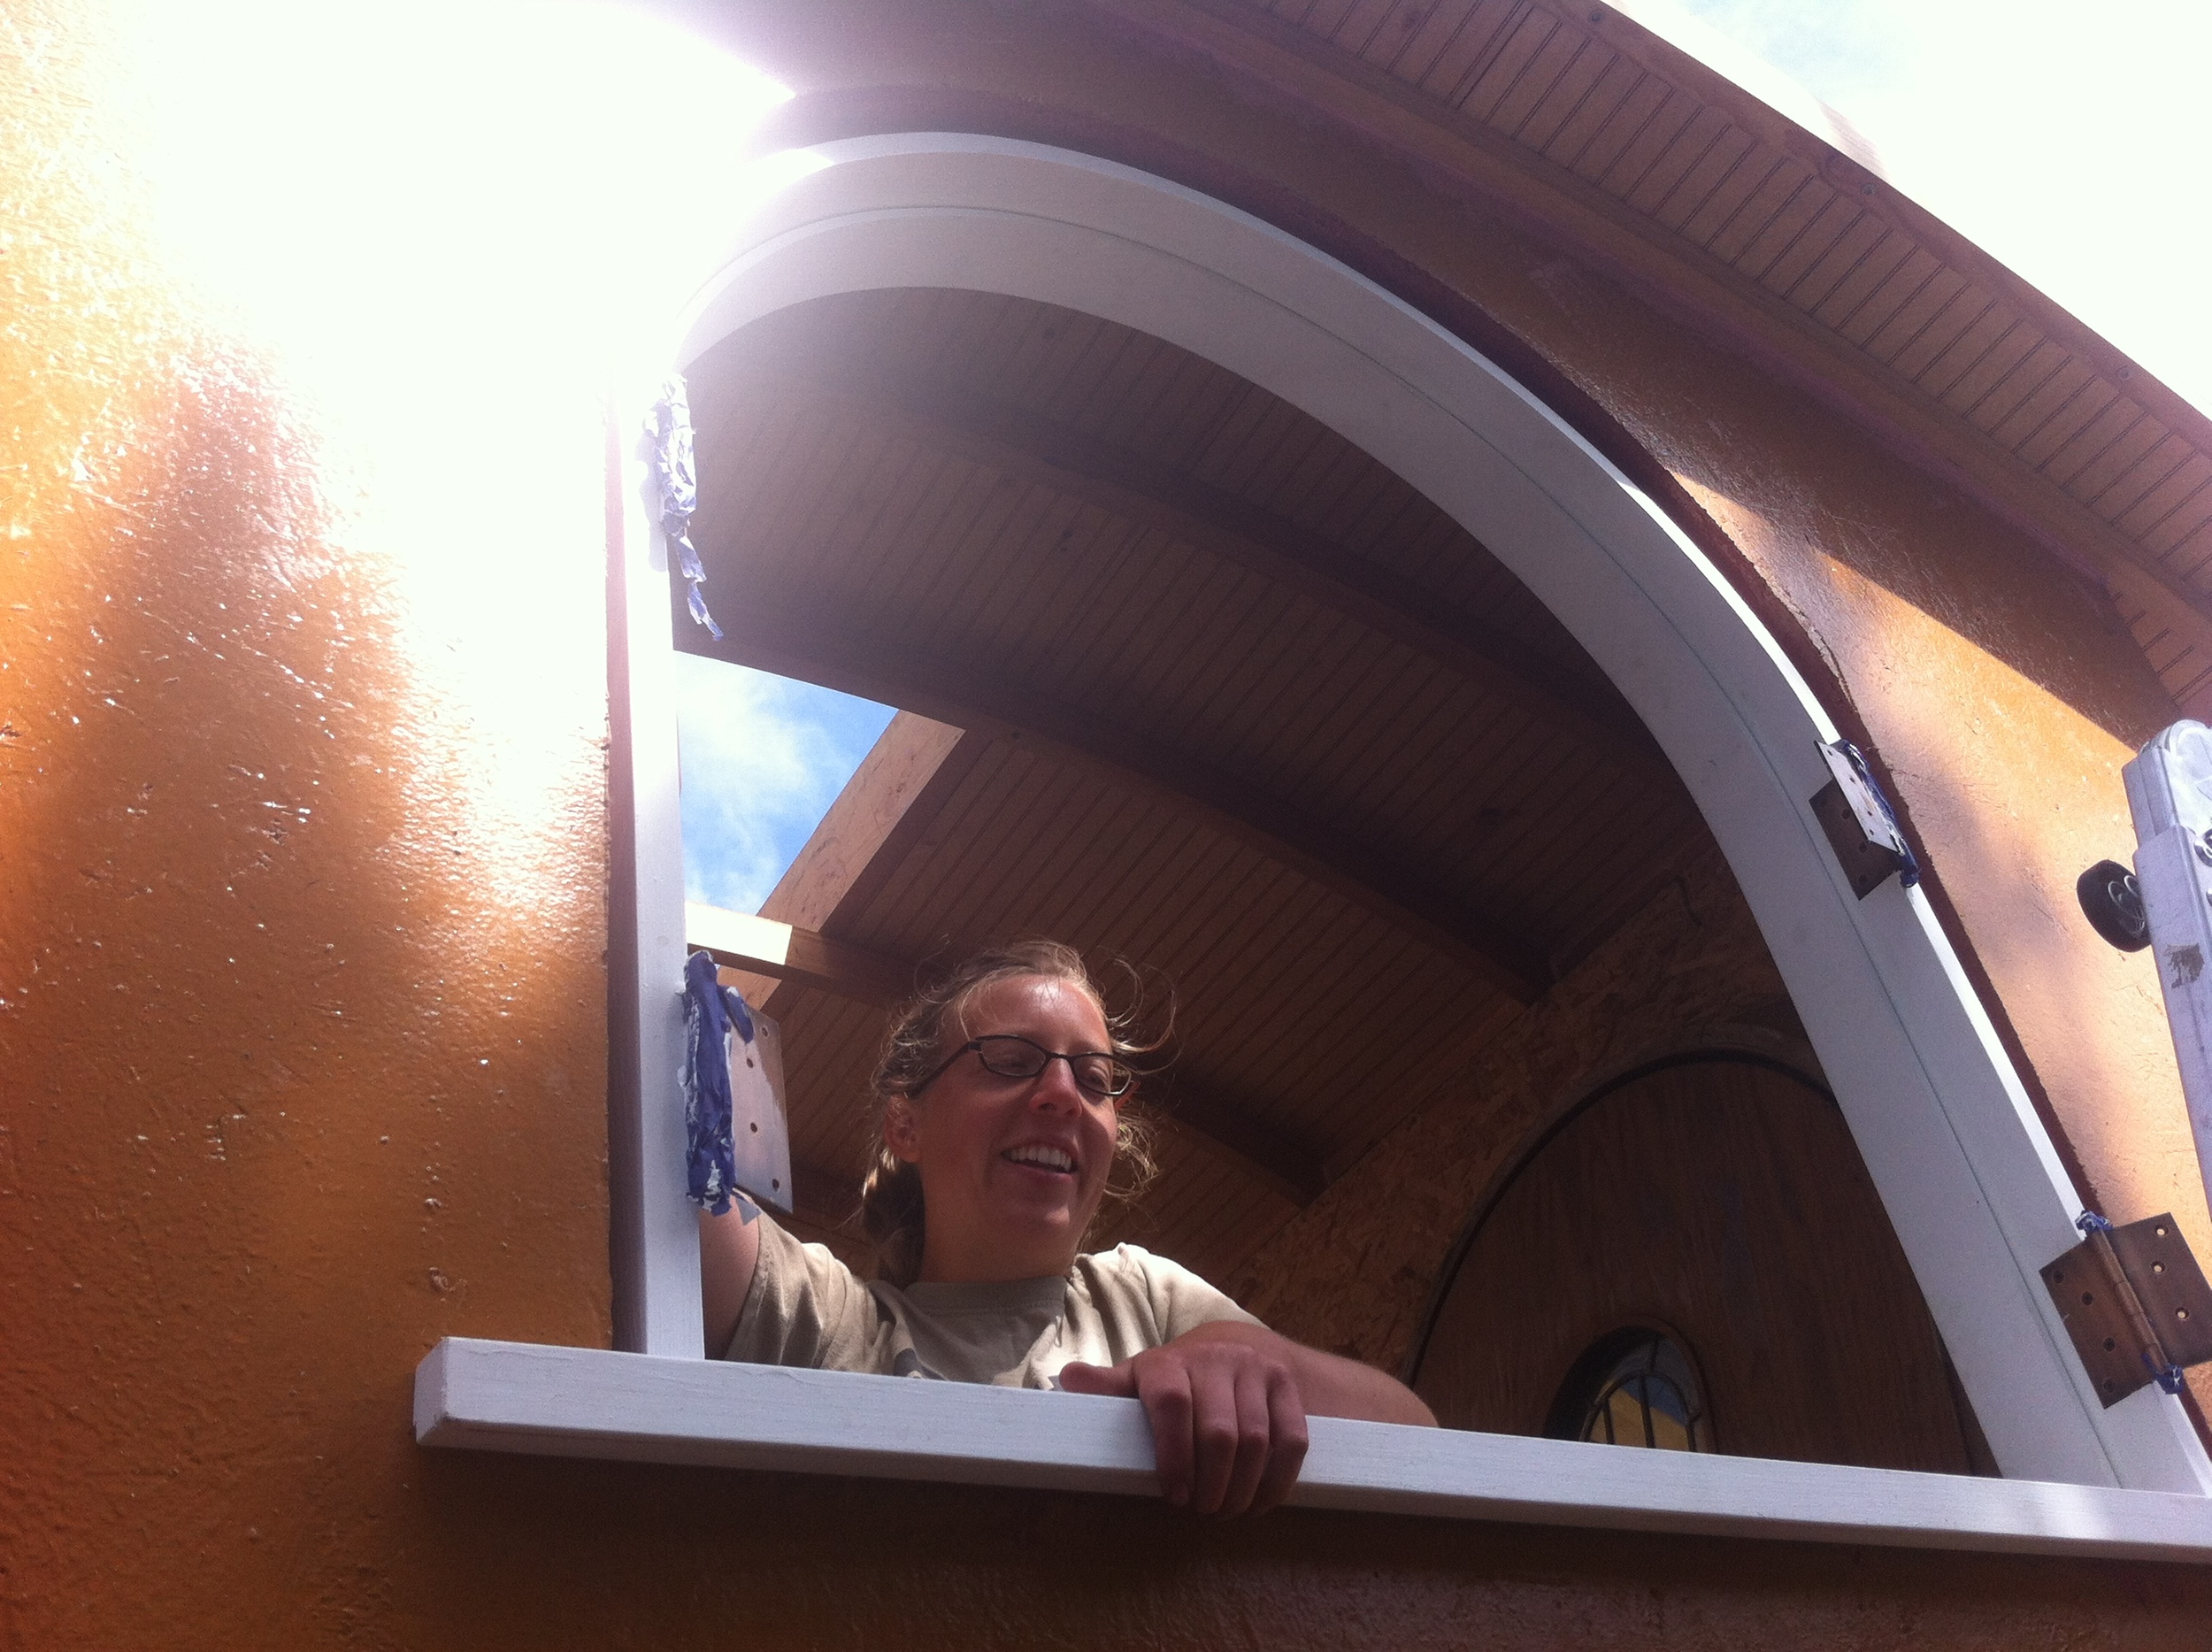 Laura-Arched-Window.jpg